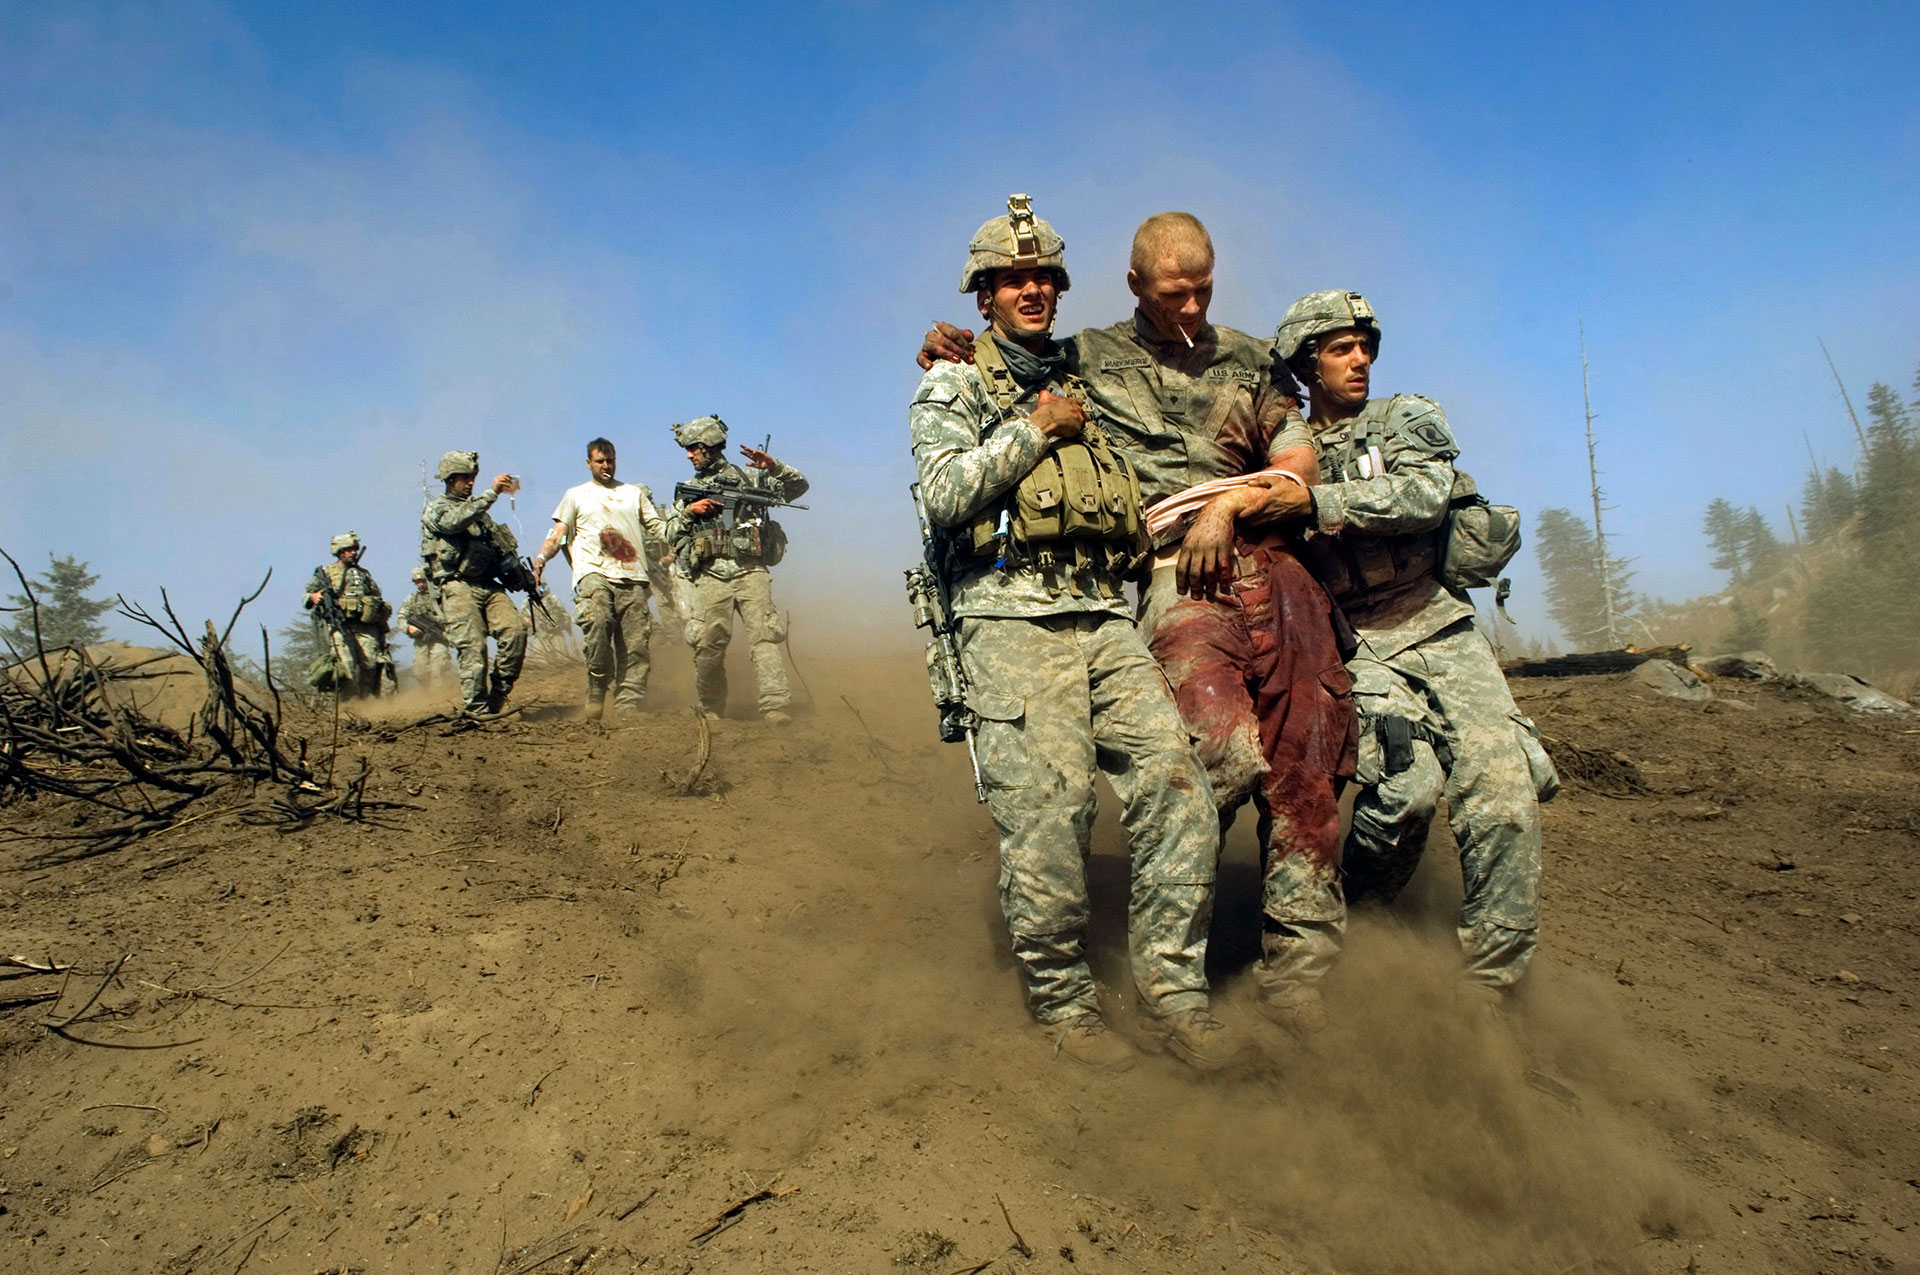 Two soldiers assist an injured third.